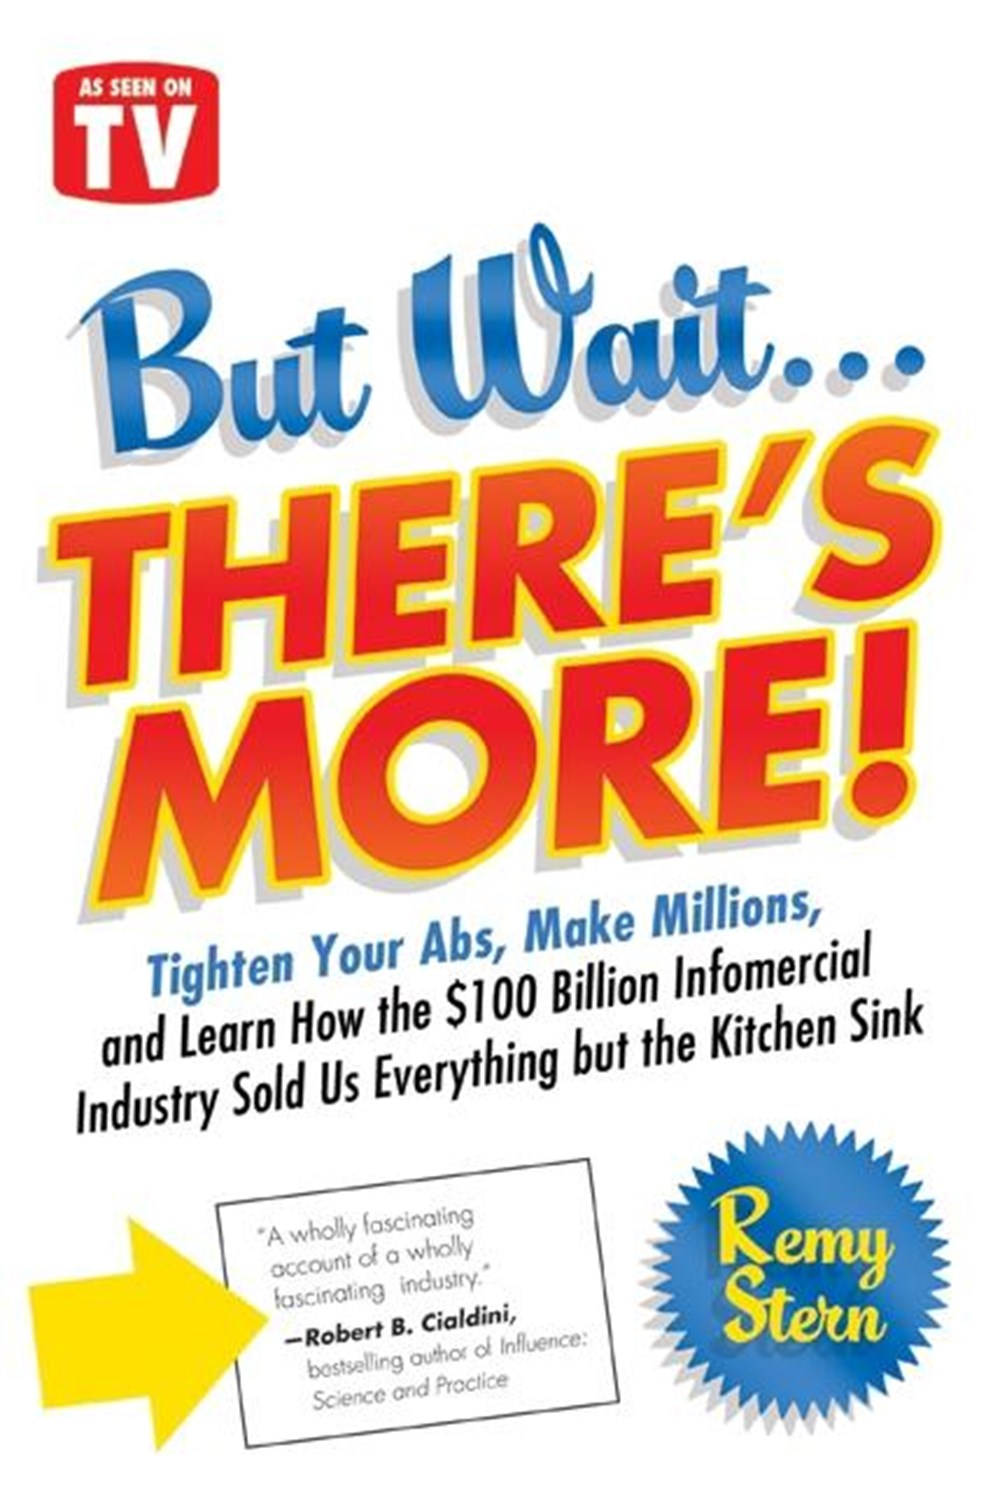 But Wait ... There's More! Tighten Your ABS, Make Millions, and Learn How the $100 Billion Infomerci